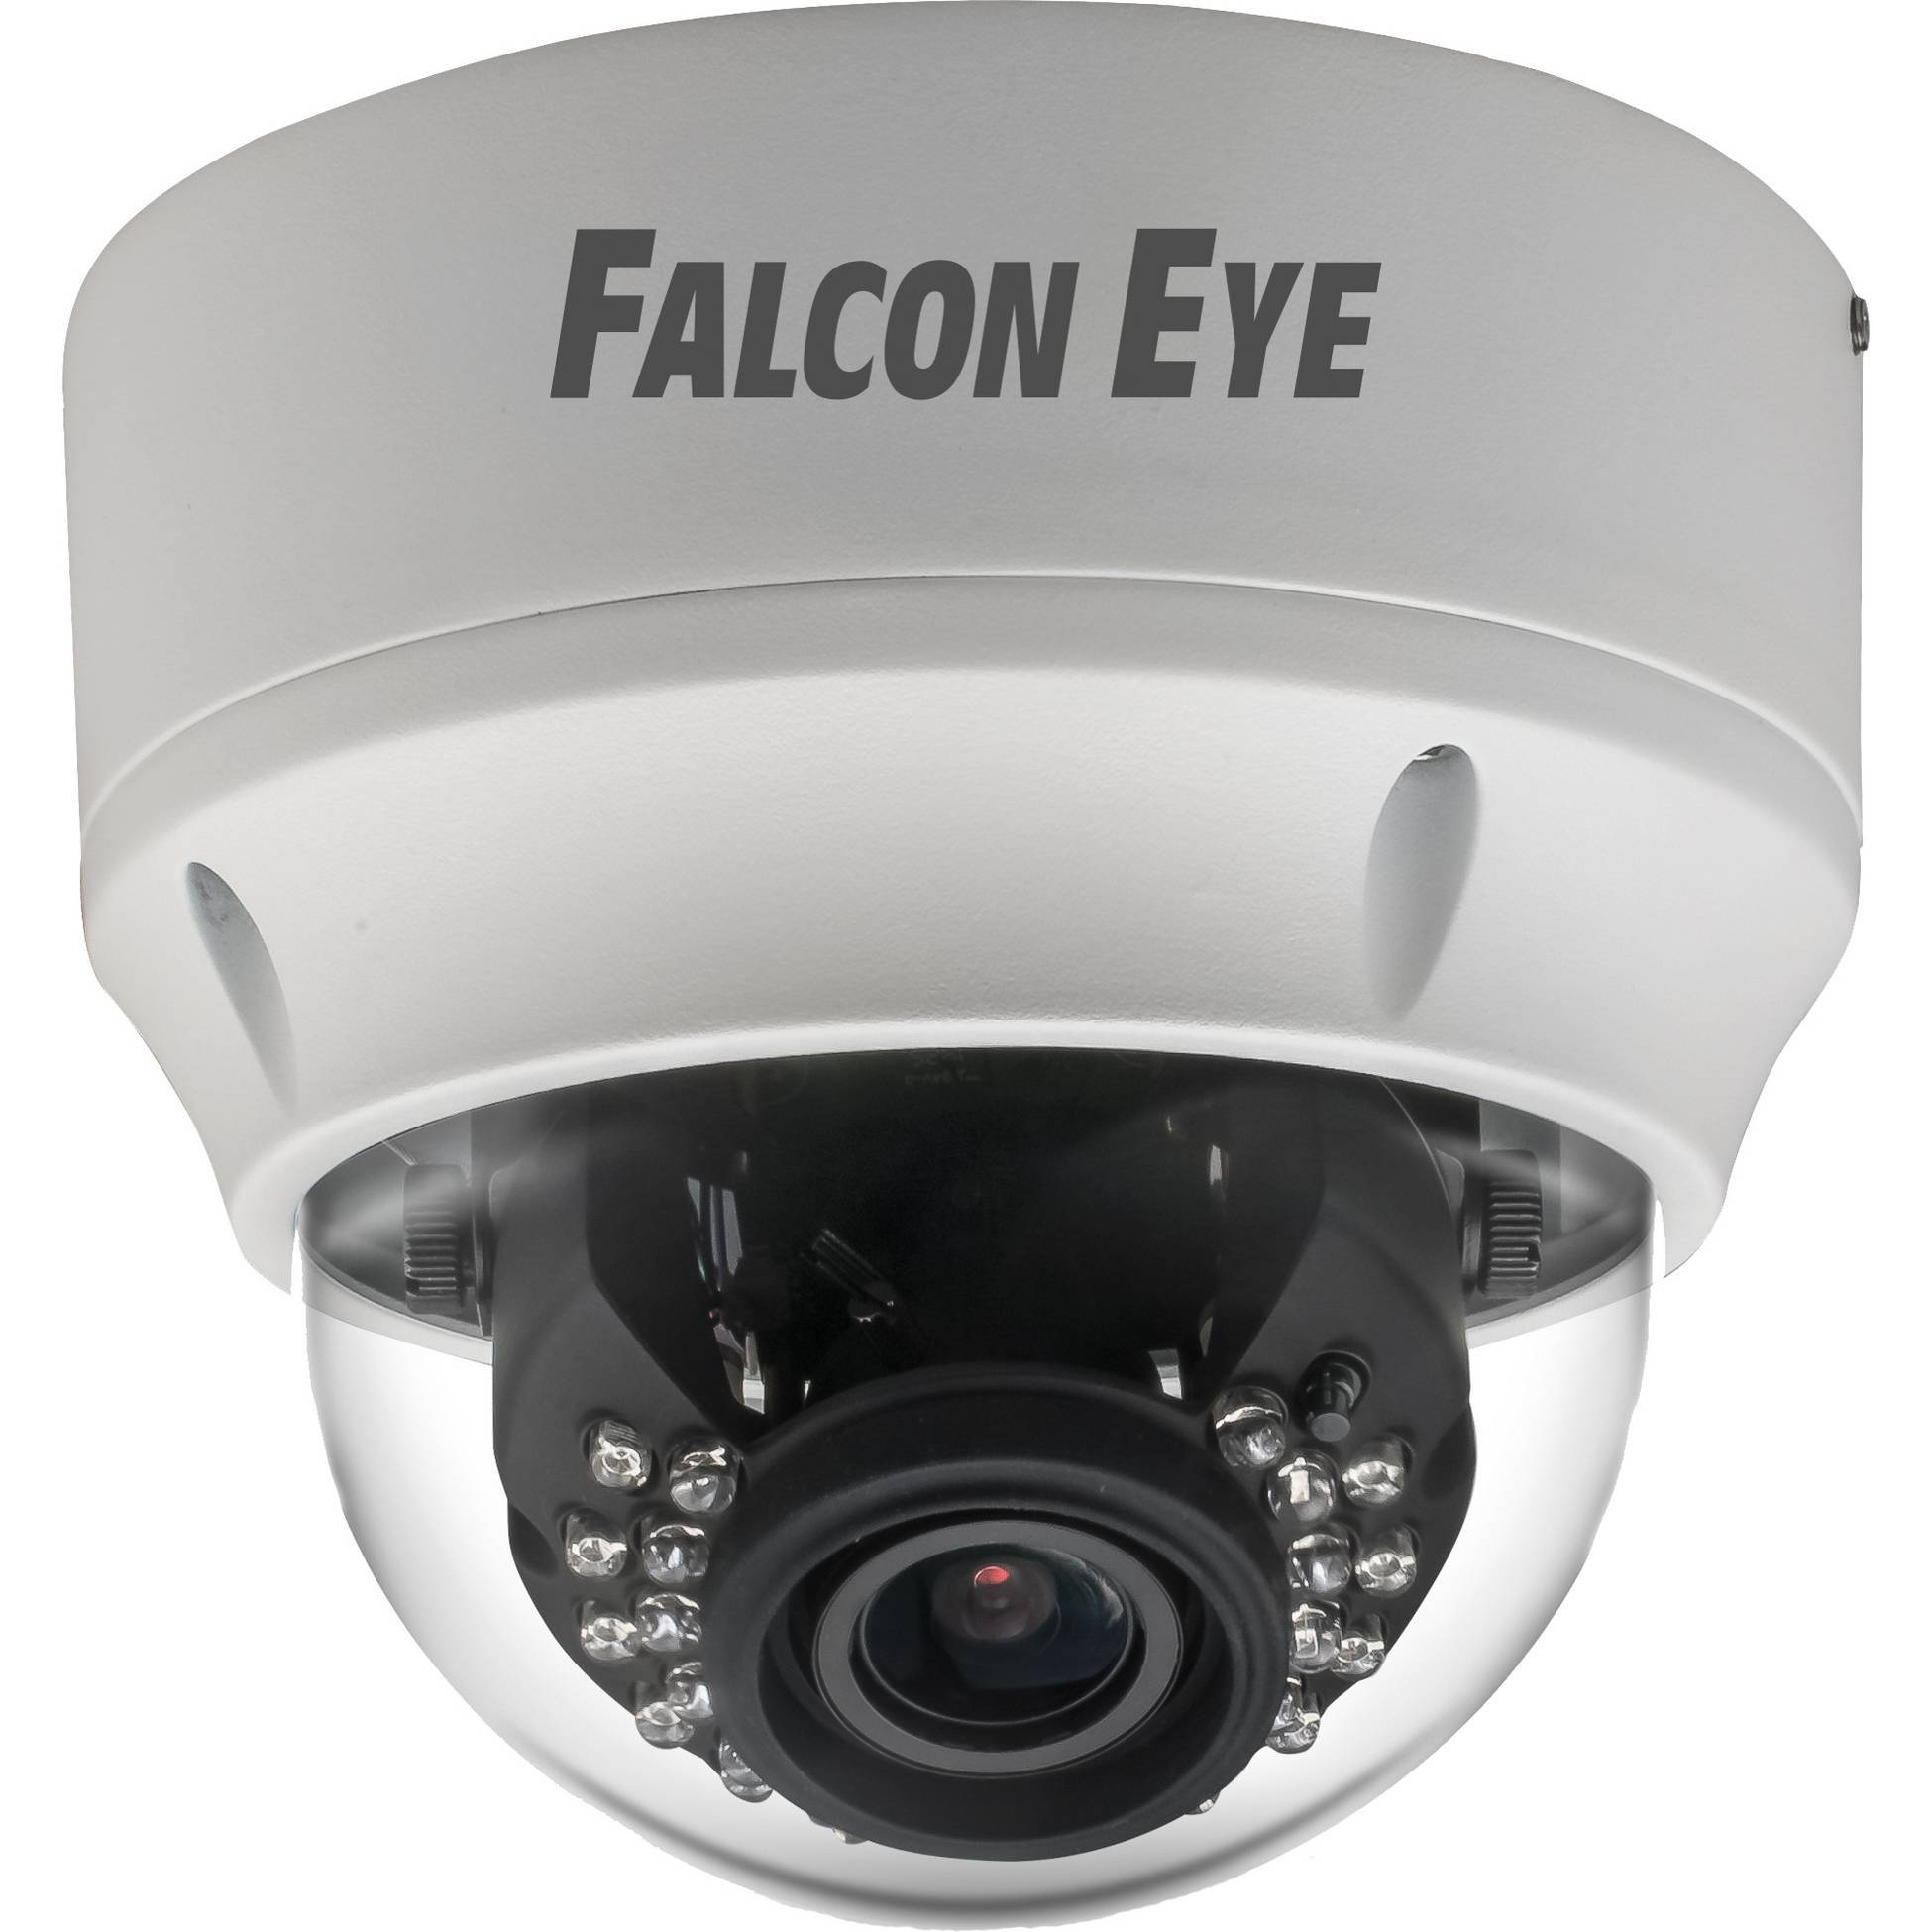 IP-камера купольная FALCON EYE FE-IPC-DL201PVA